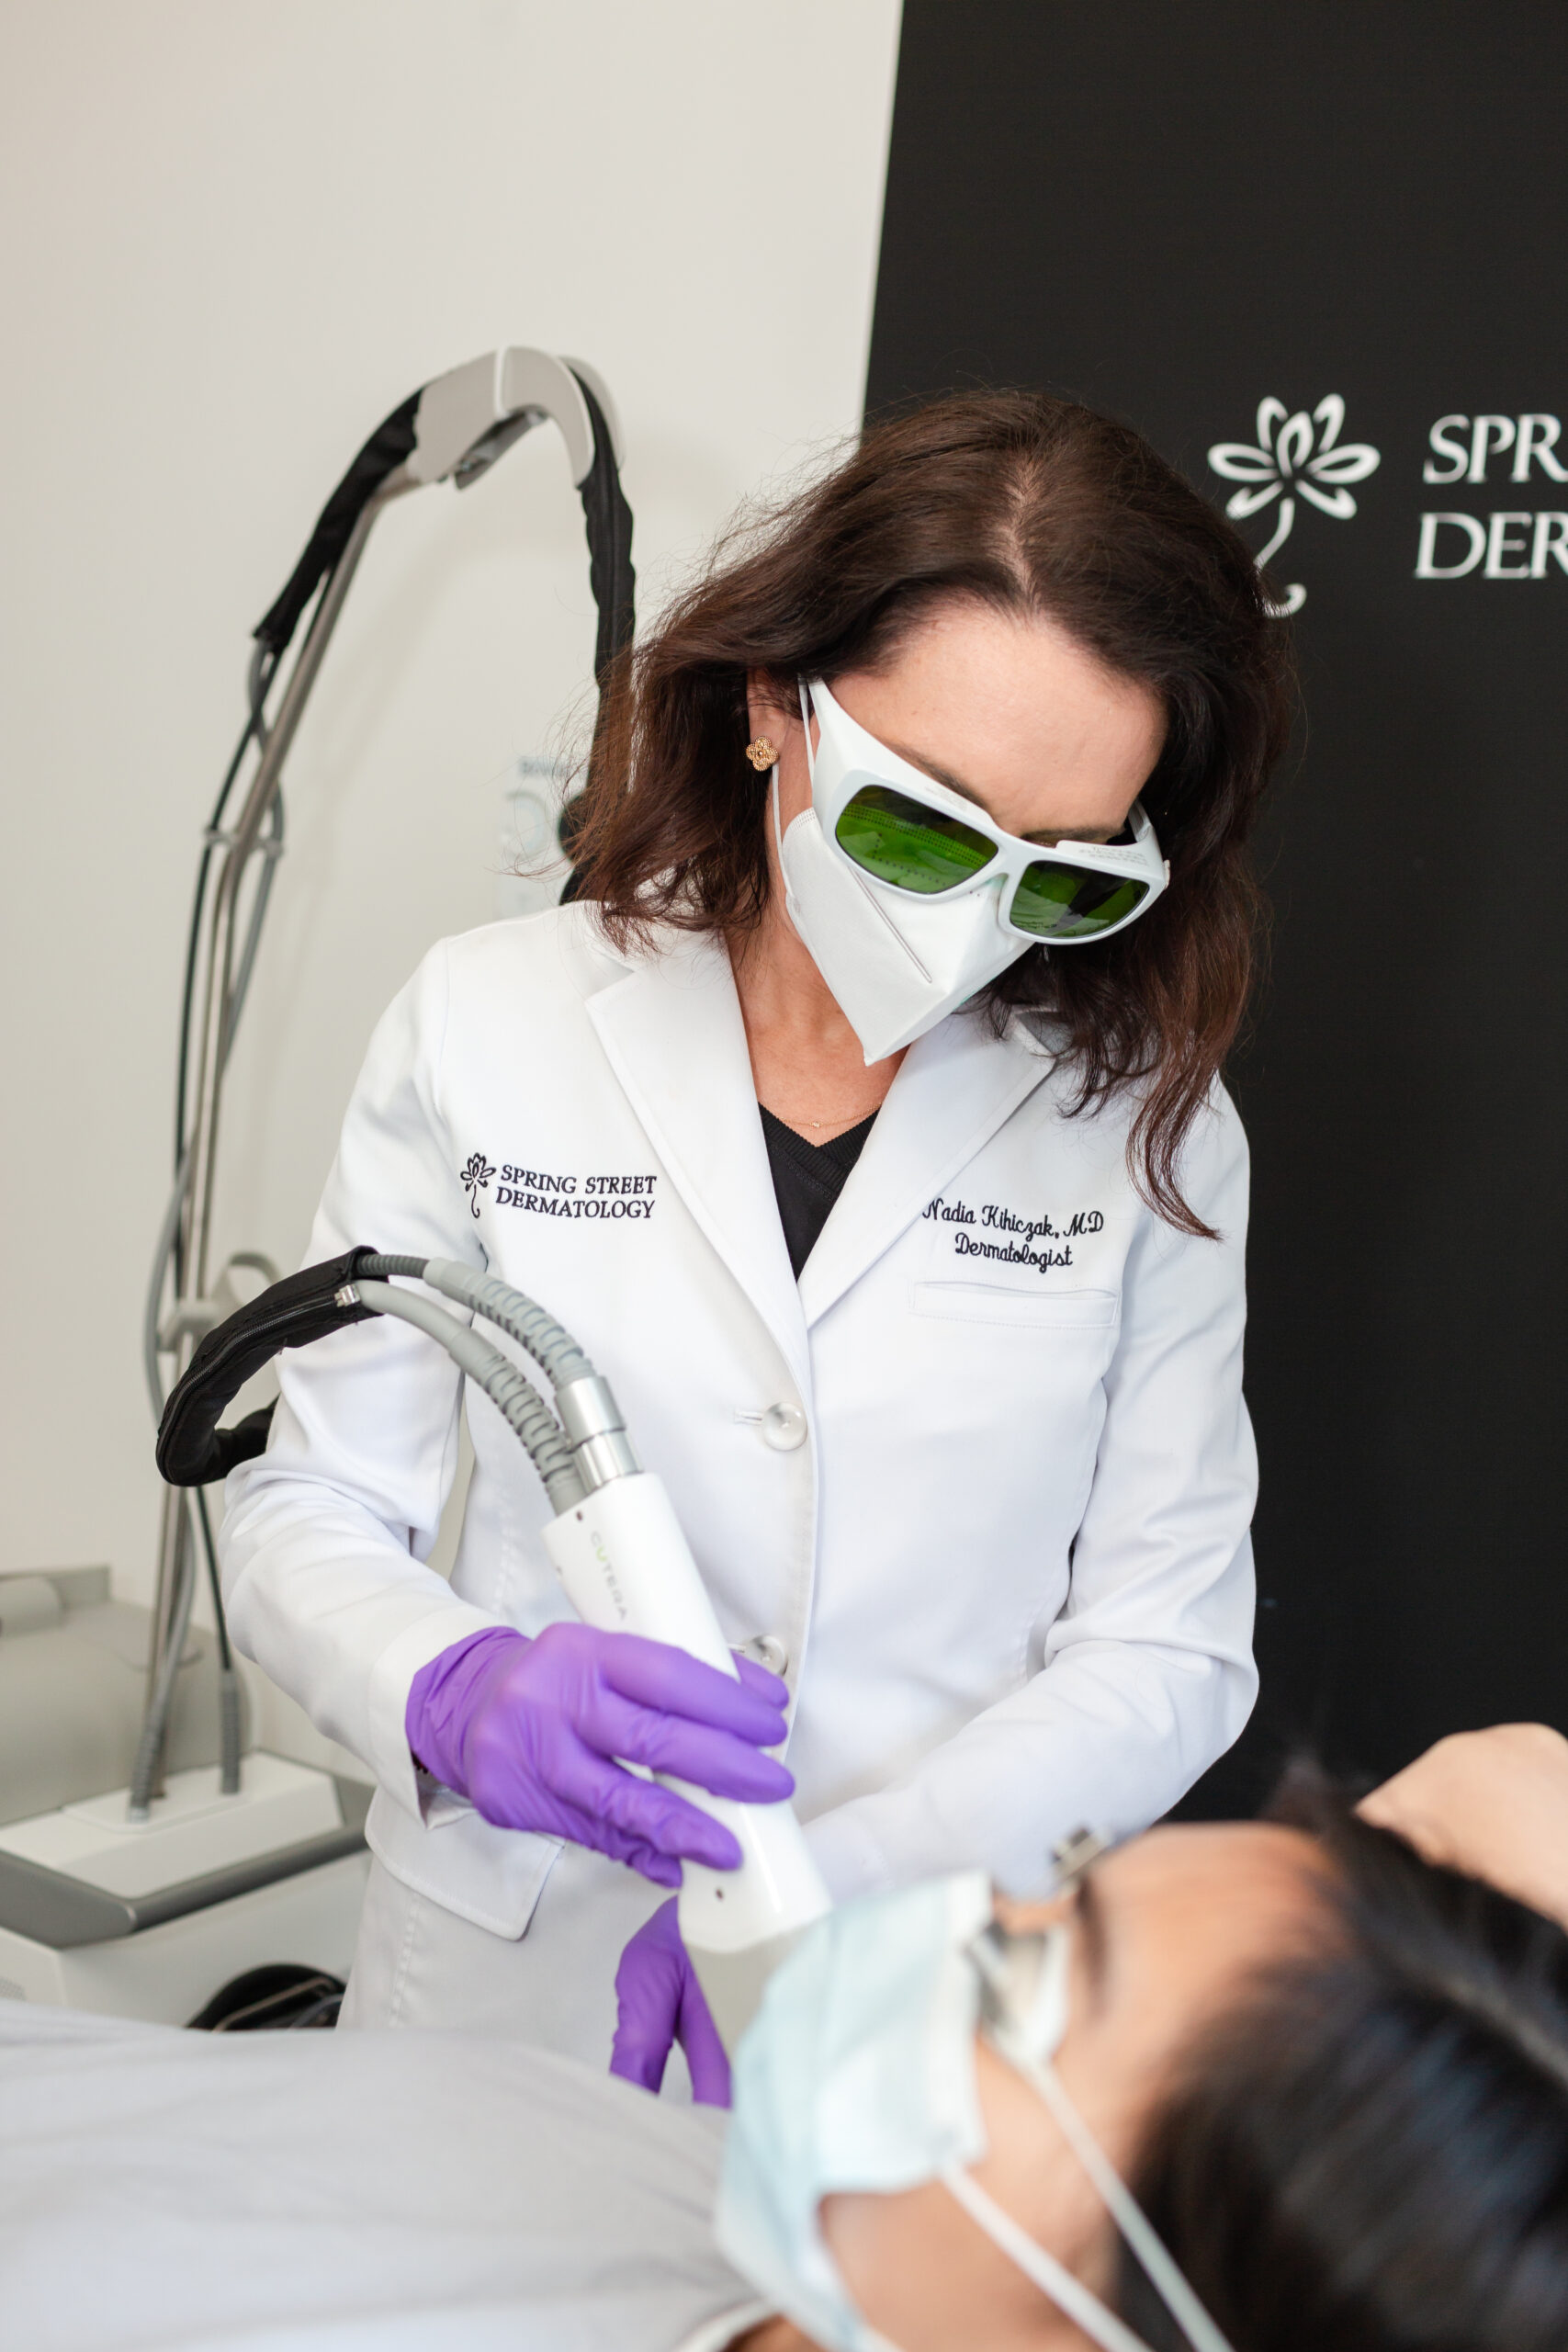 Dr. Nadia Khicizak is performing a treatment on her patient at Spring Street Dermatology in NYC, NY.